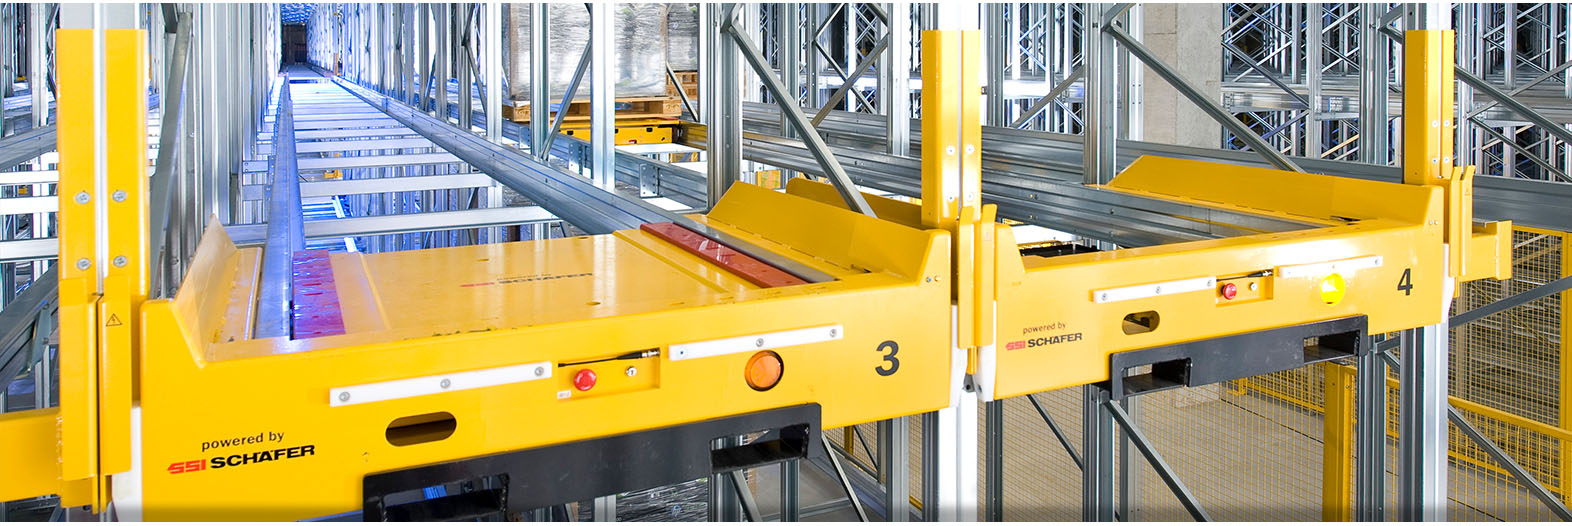 Warehouses with Orbiter Pallet Shuttle. Quality Orbiter Pallet Shuttle. SSI Schaefer. www.schaefershelving.com